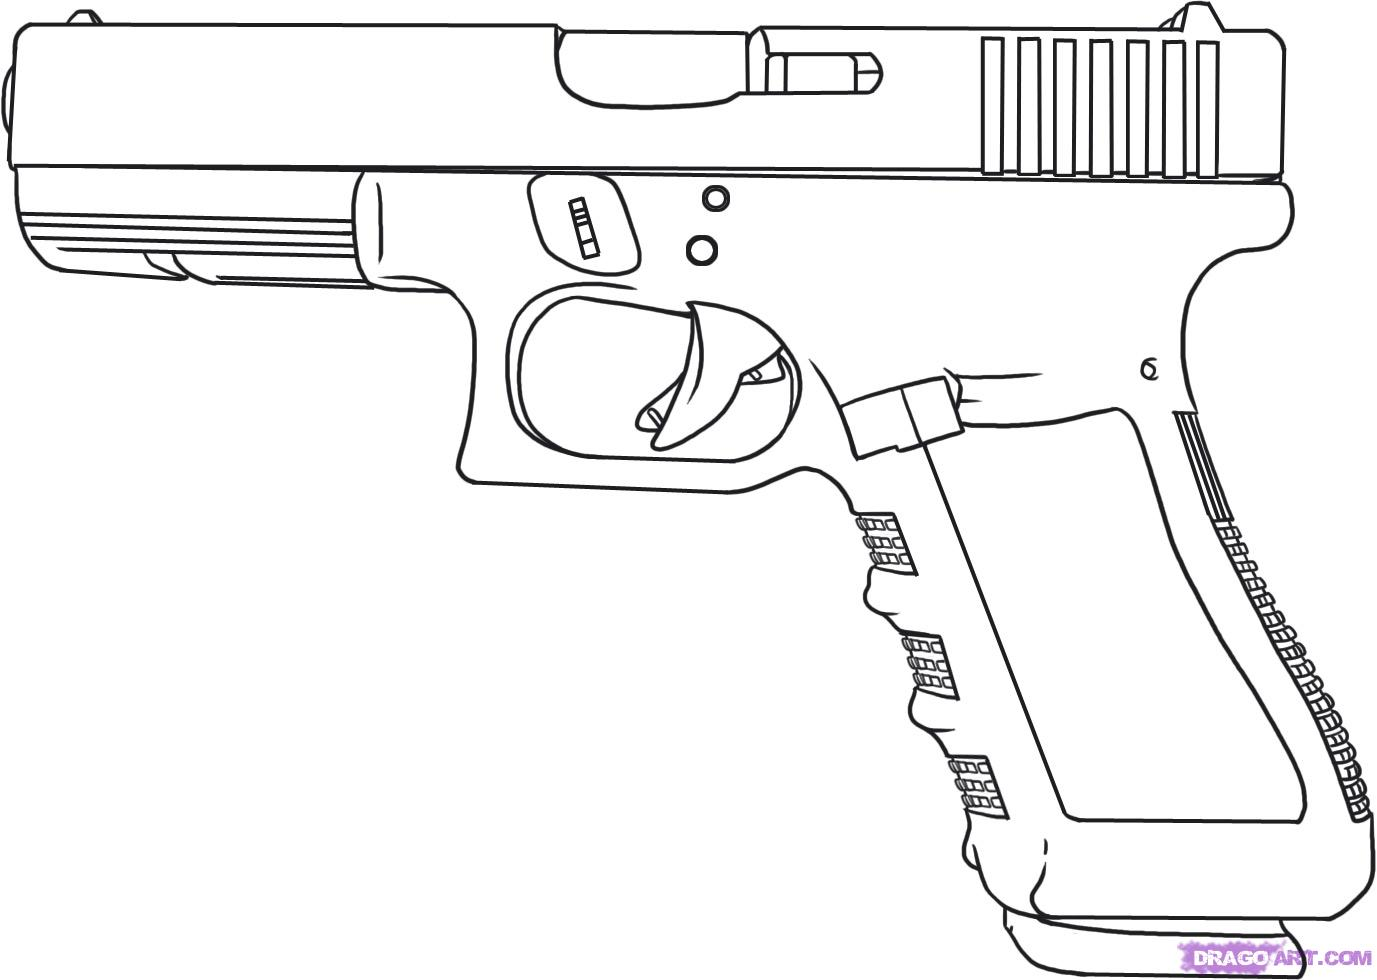 Step 6  How To Draw A Glock 17 9mm Hand Gun